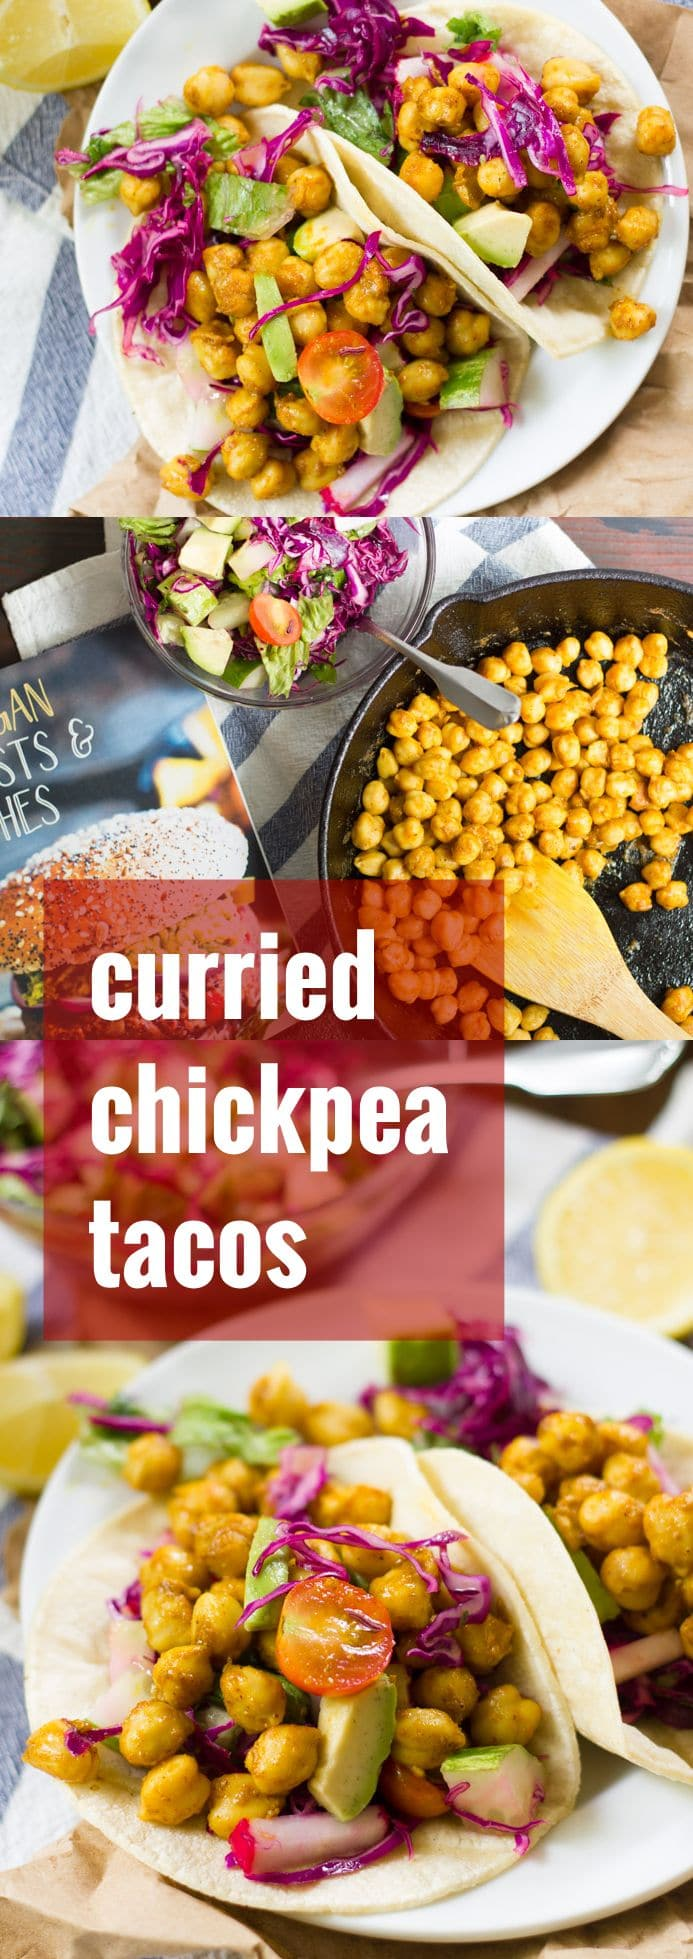 Curried Chickpea Tacos